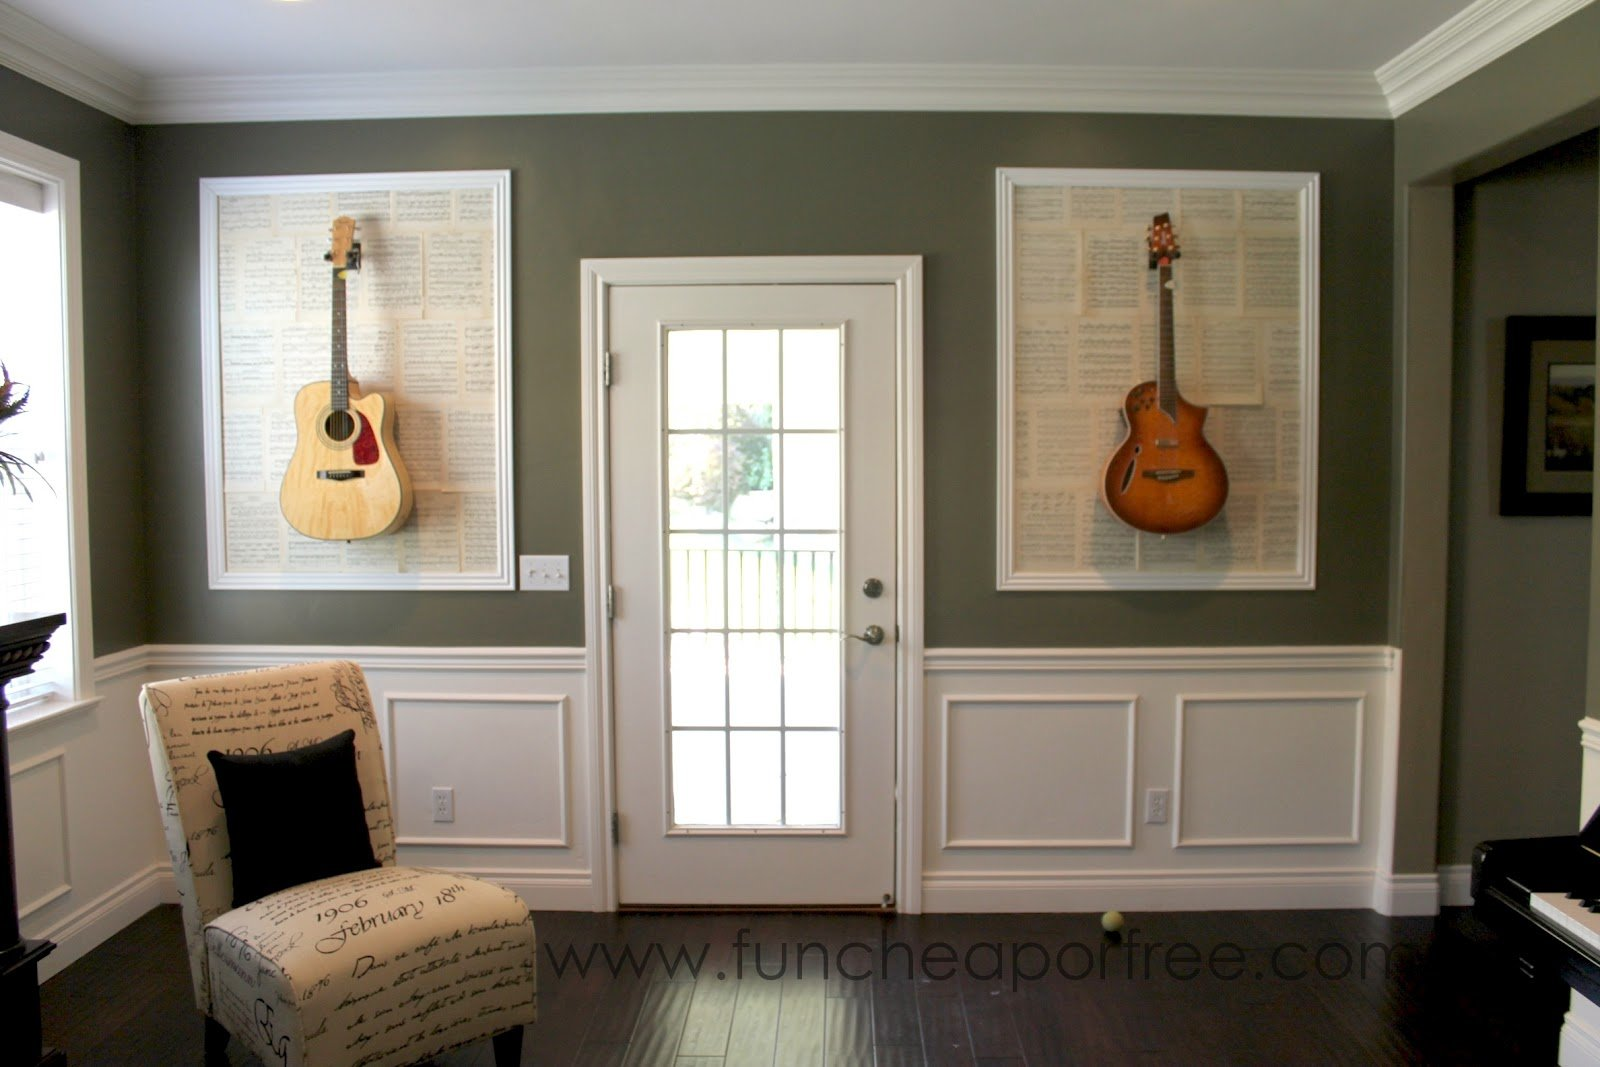 Best Diy Framed Guitars Fun Cheap Or Free With Pictures